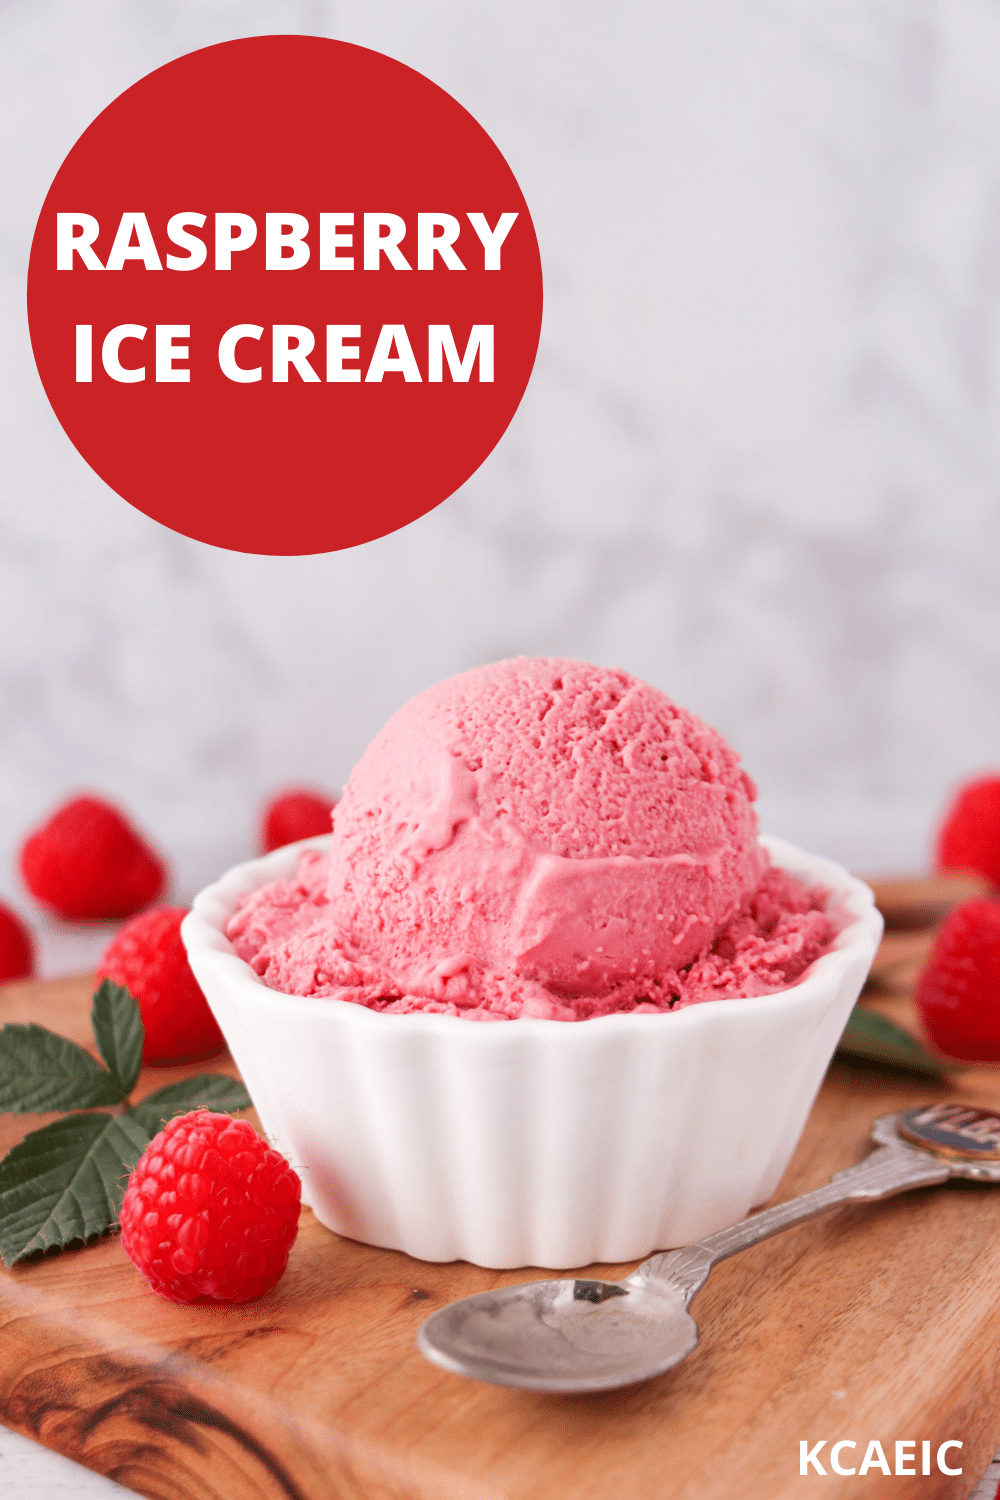 Scoop of raspberry ice cream in a bowl, with fresh raspberries and leaves on the side and a vintage spoon, with text overlay, raspberry ice cream, KCAEIC.